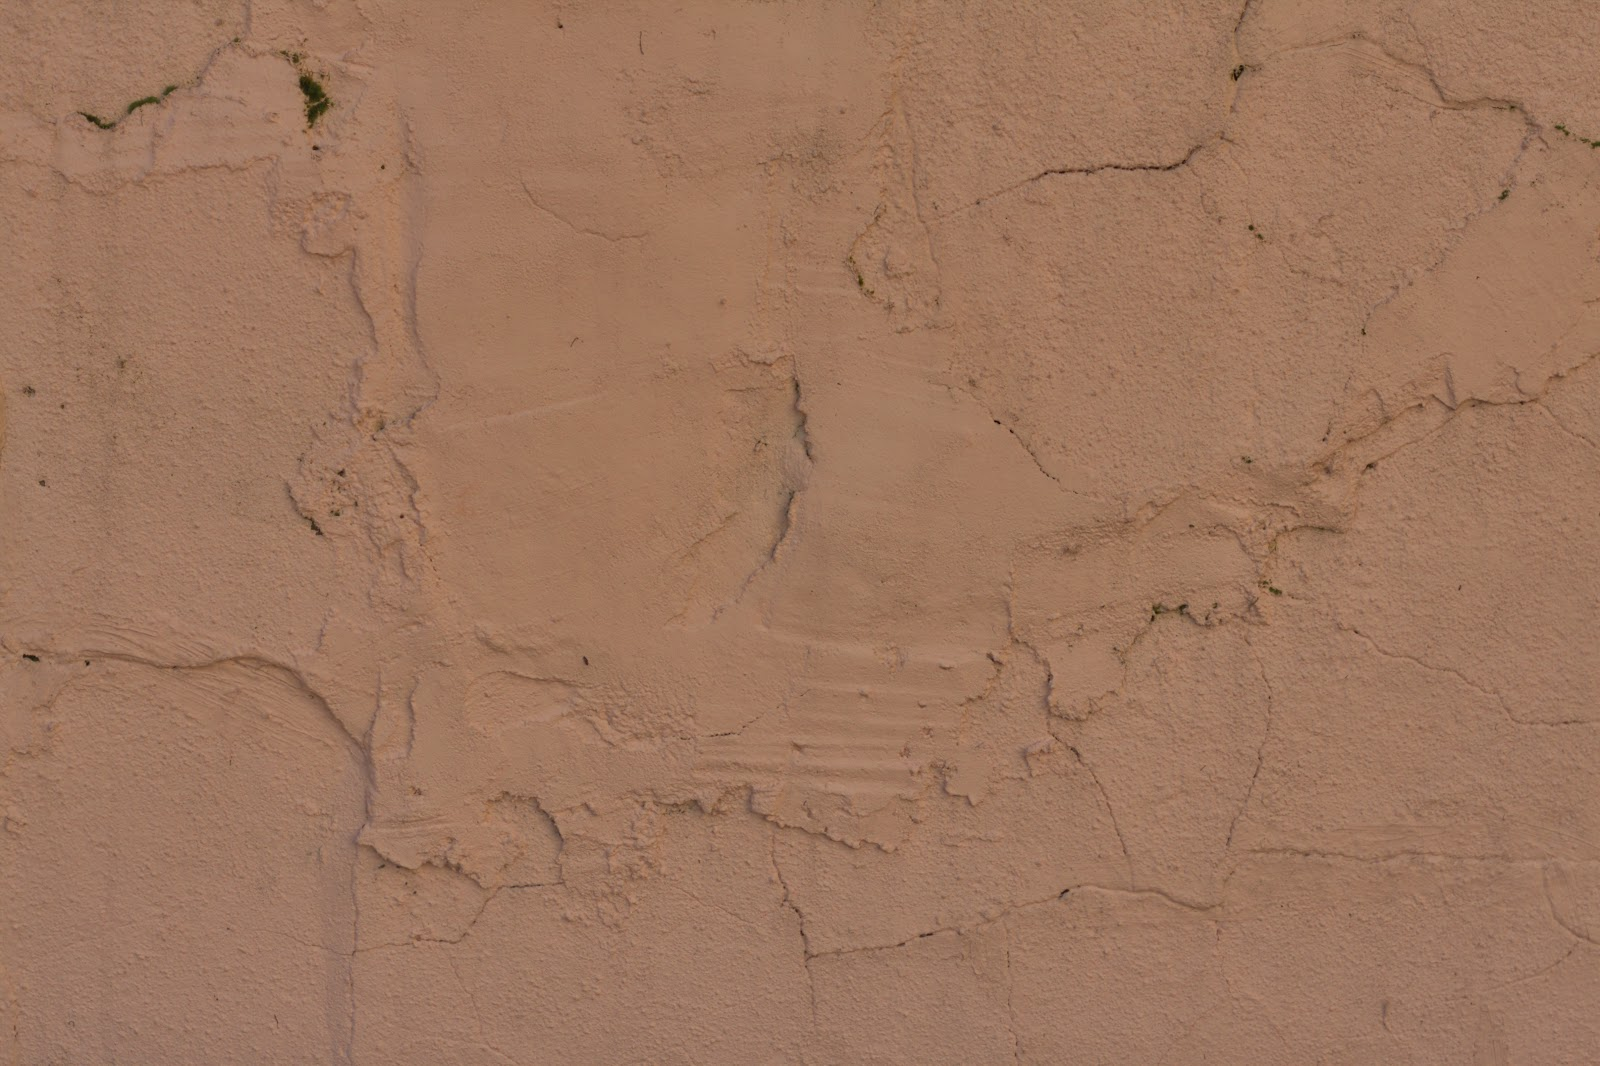 Stucco wall pink cracks feb_2015 texture 4770x3178